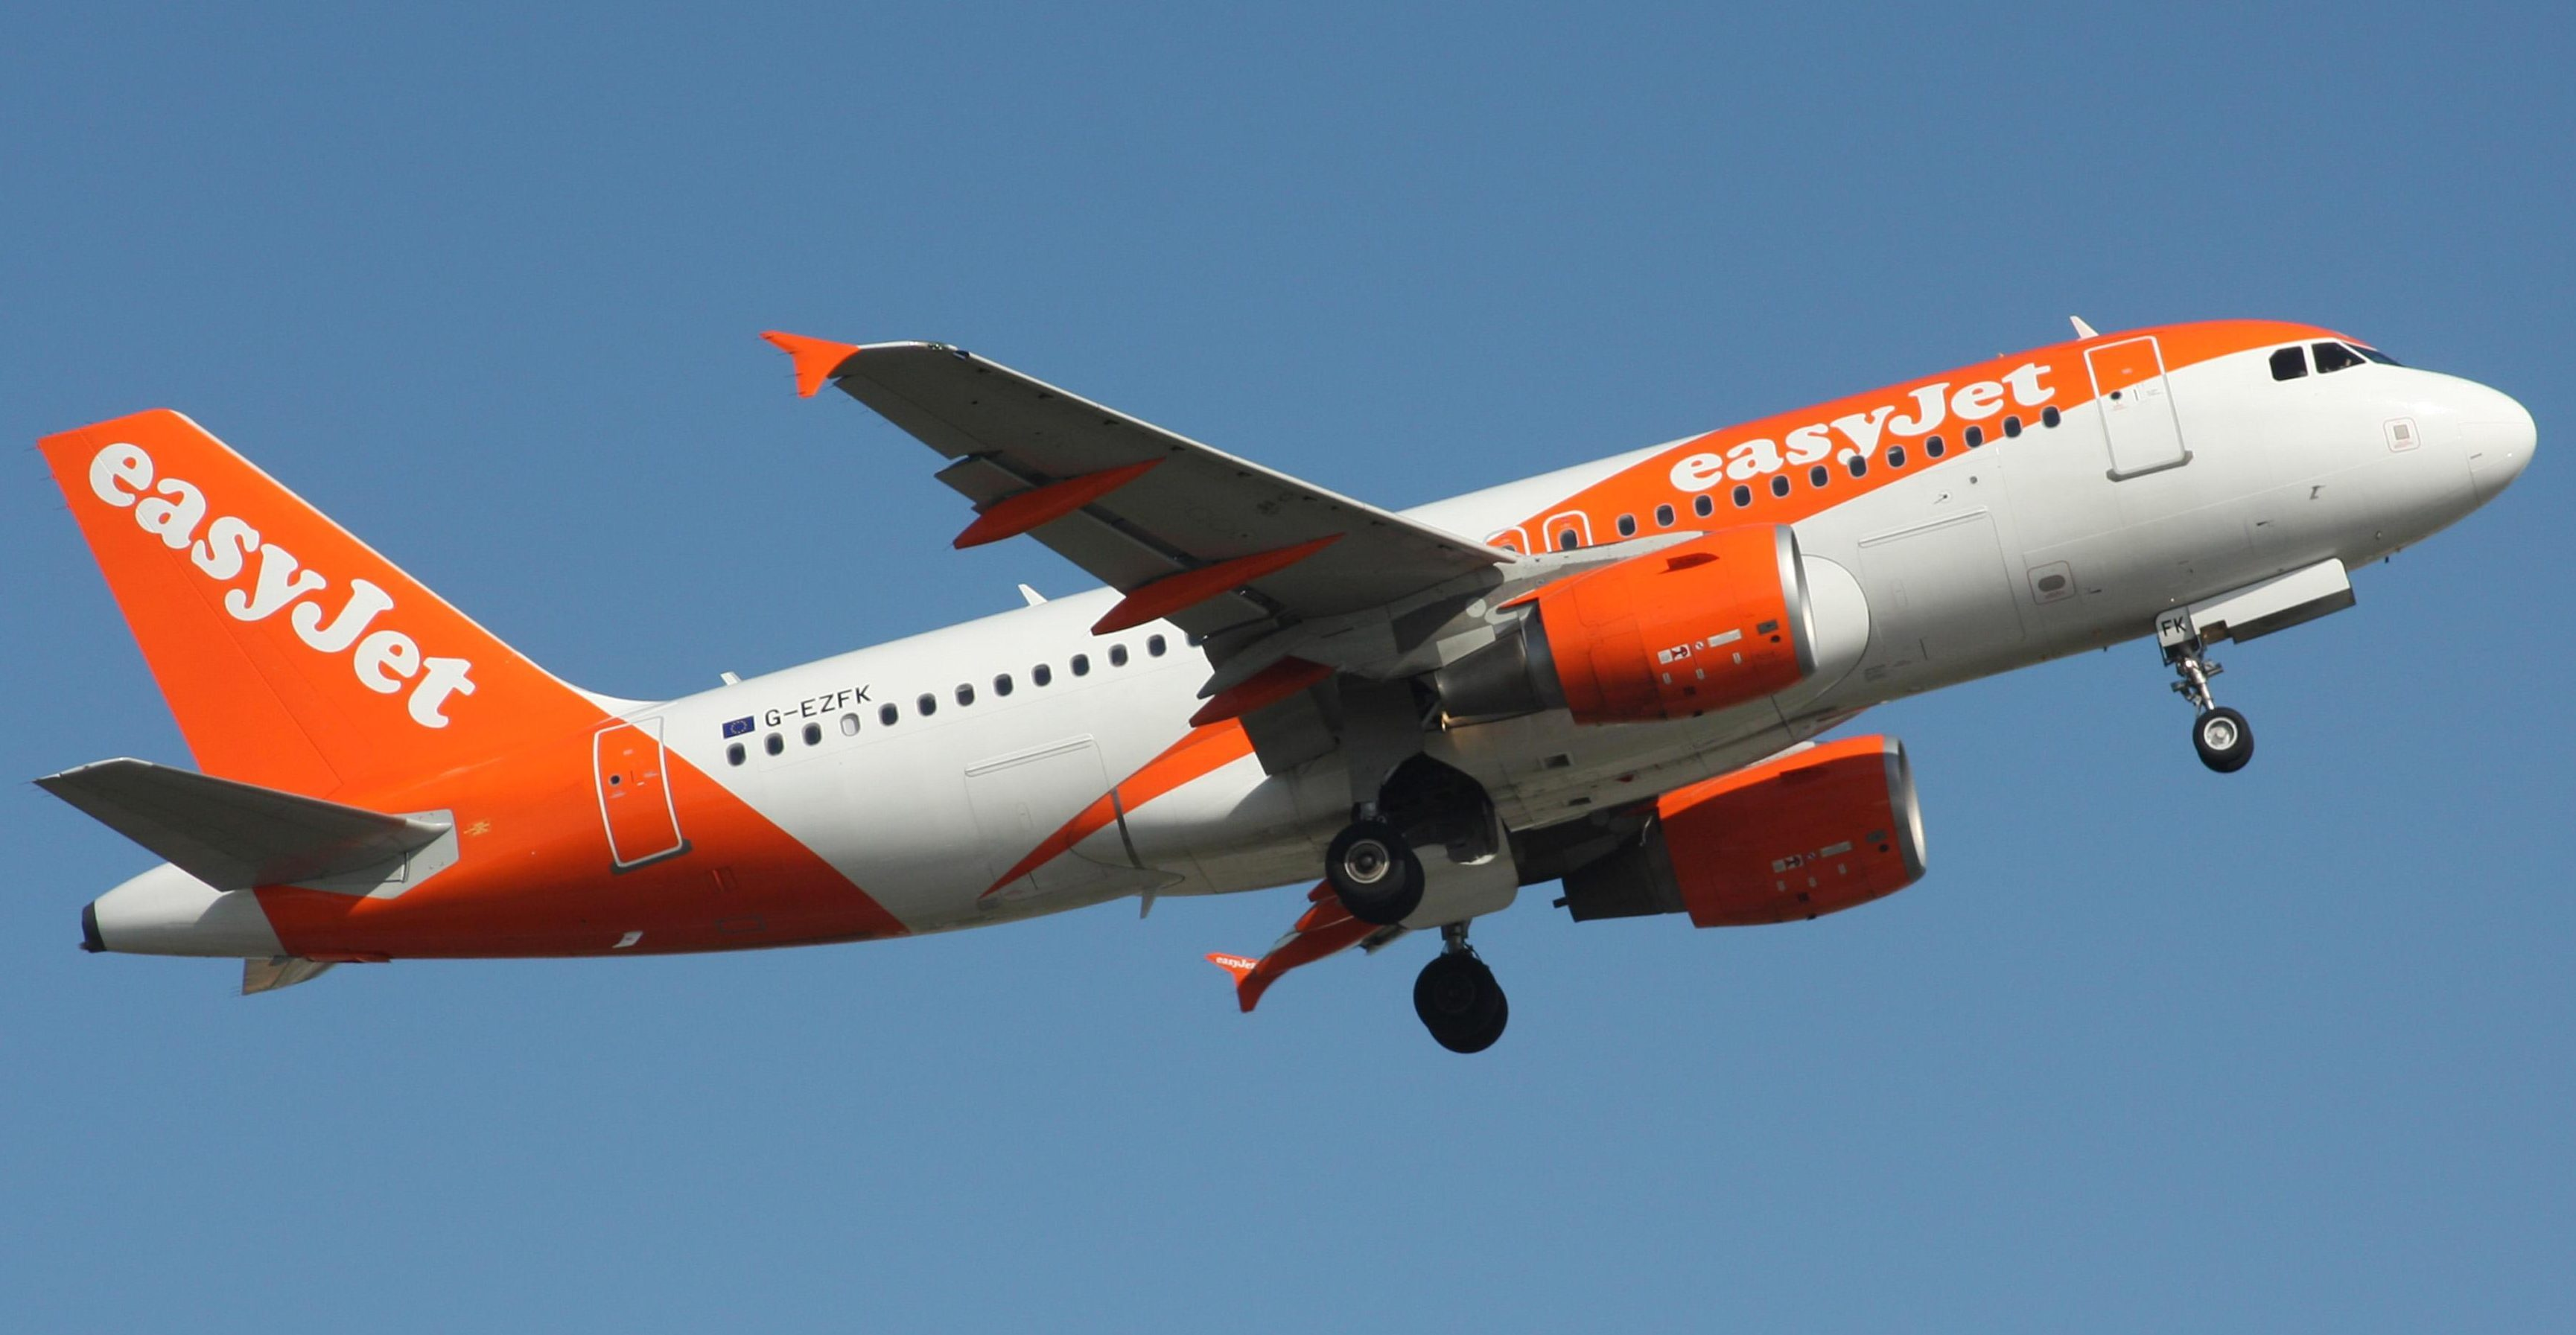 Eight of the 21 EasyJet trips analysed were cheaper after a fortnight